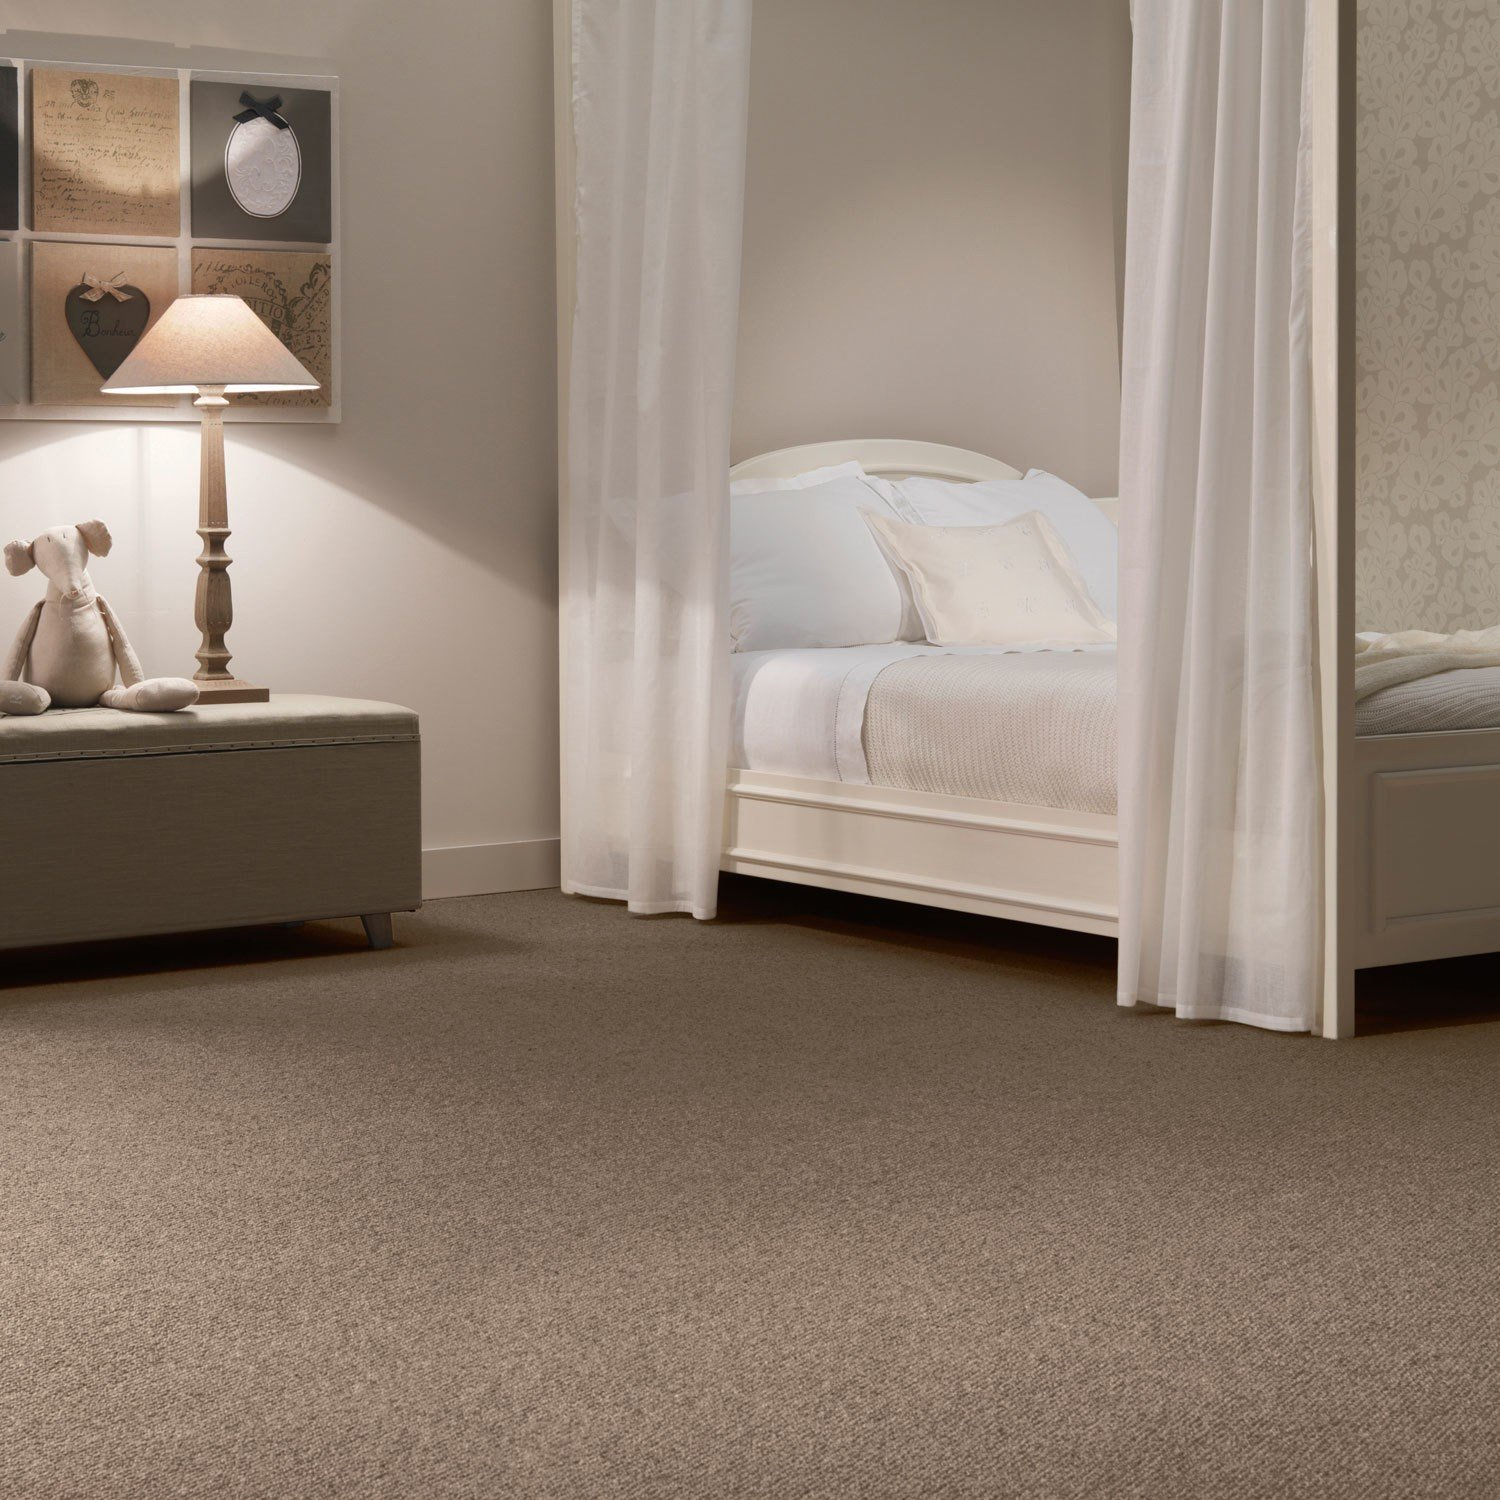 Bedroom Carpets Stunning And Useful  goodworksfurniture